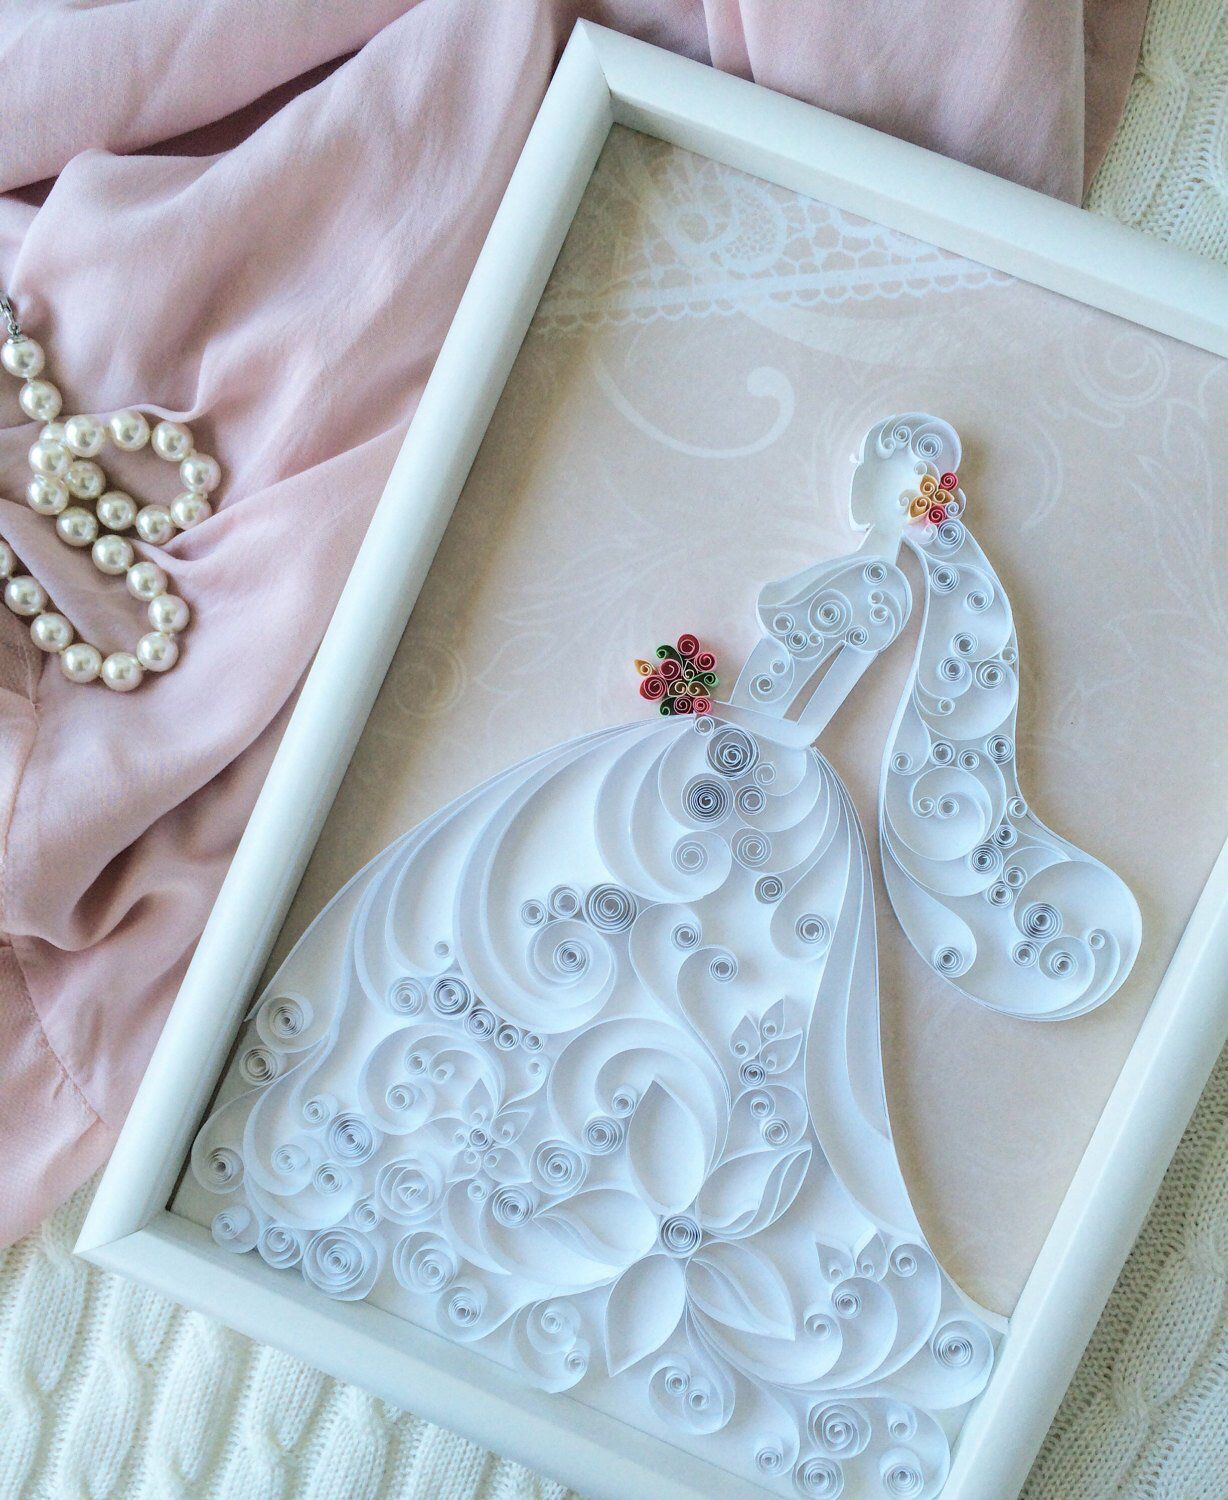 Excited to share this item from my etsy shop quilling